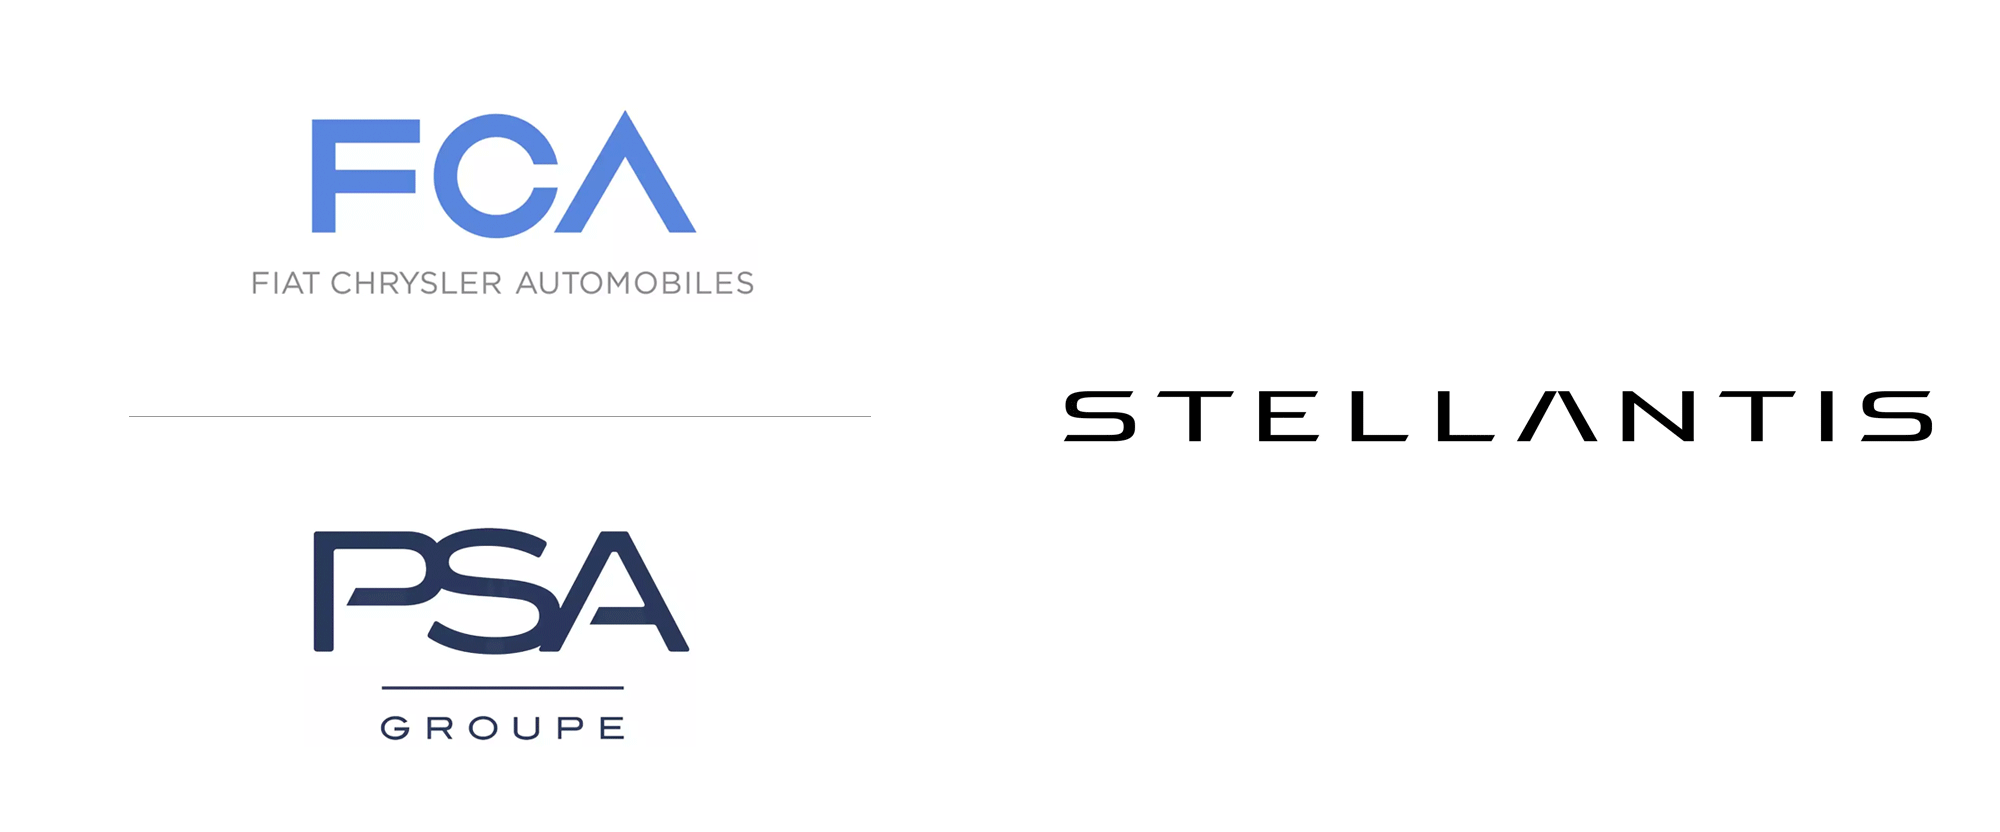 New Name and Logo for Stellantis by Publicis Group